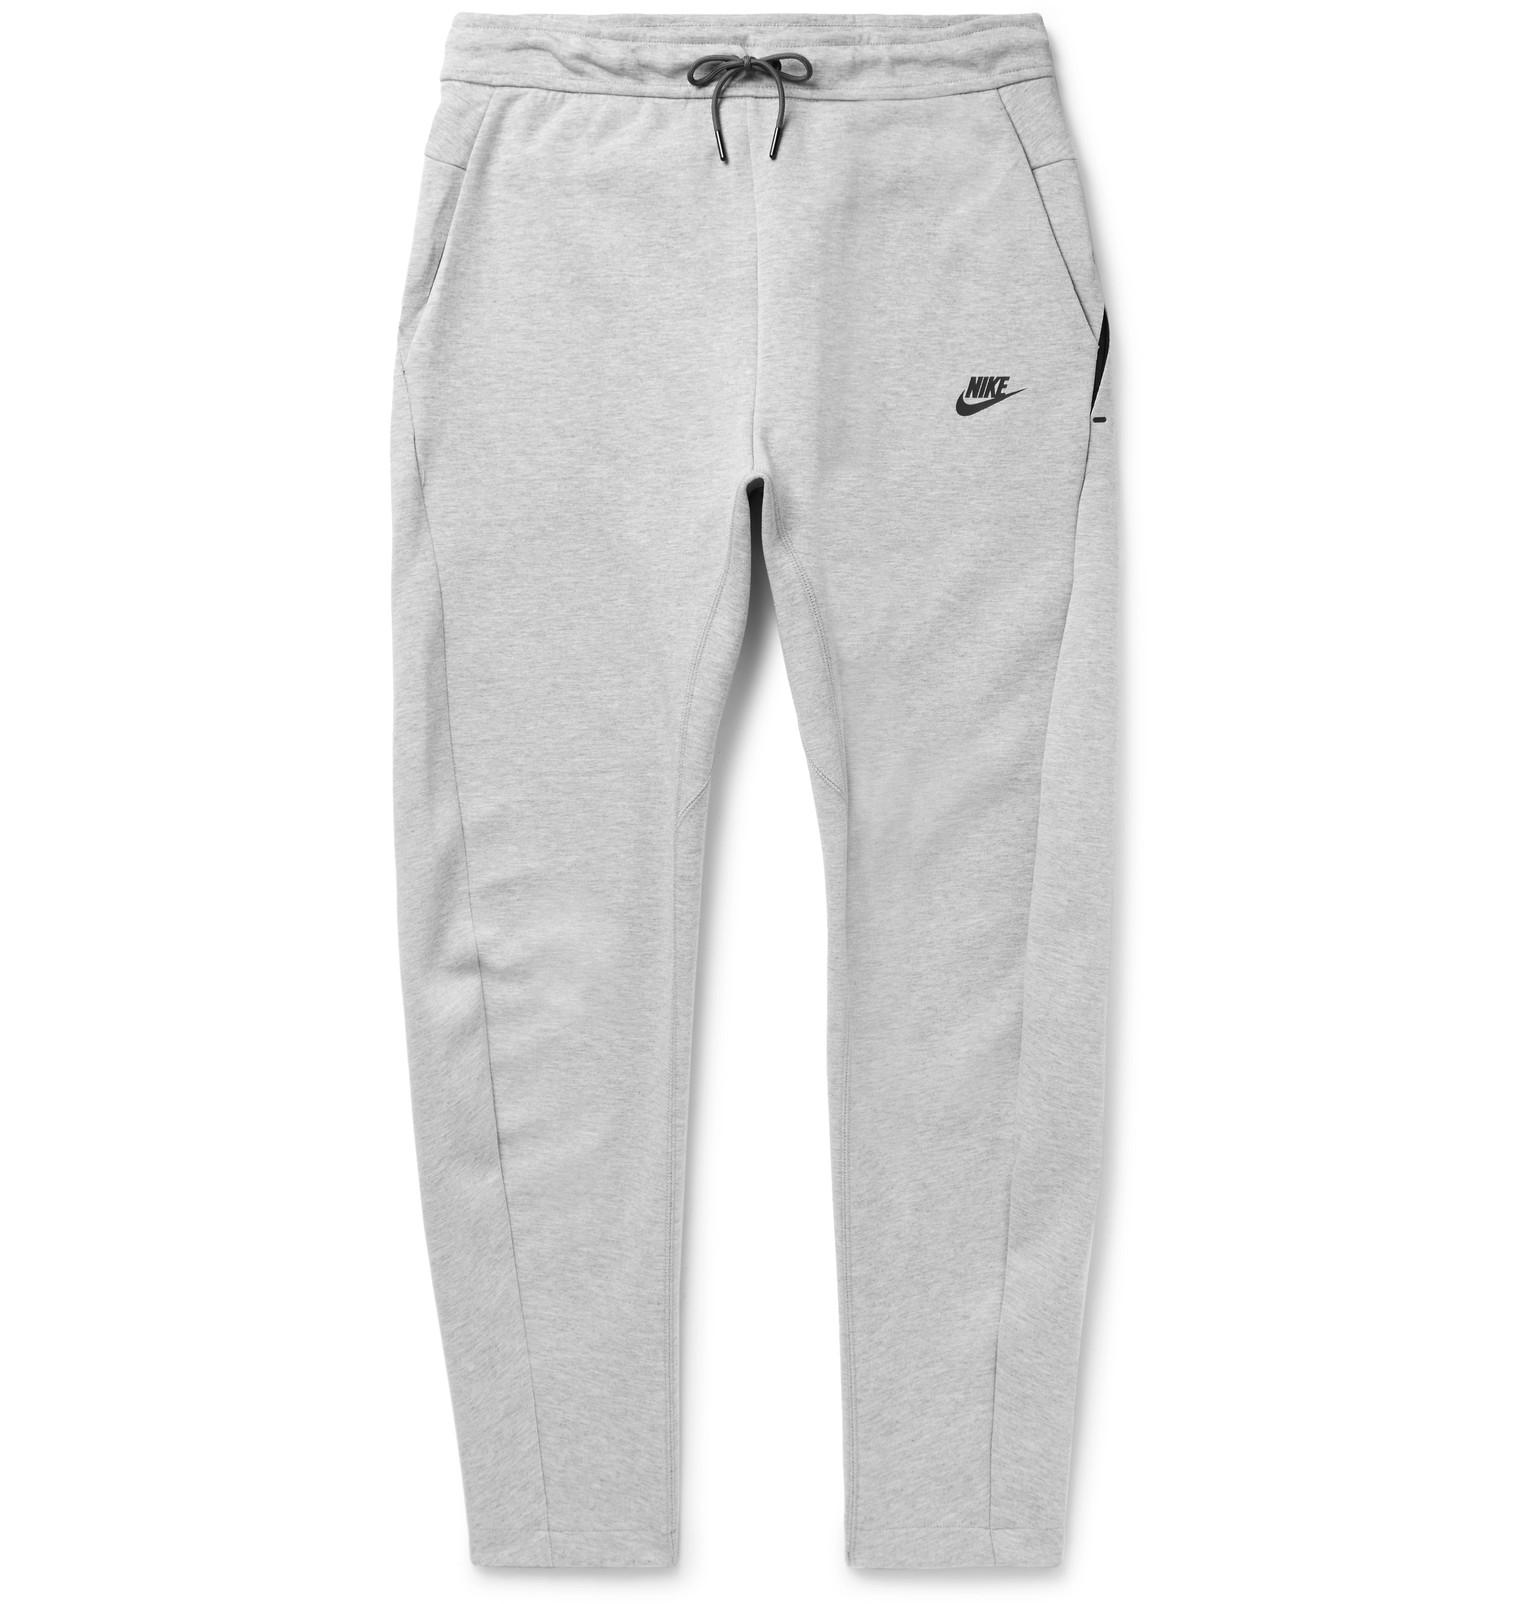 45e483c0fb8b Nike Slim-fit Cotton-blend Tech Fleece Sweatpants in Gray for Men - Lyst